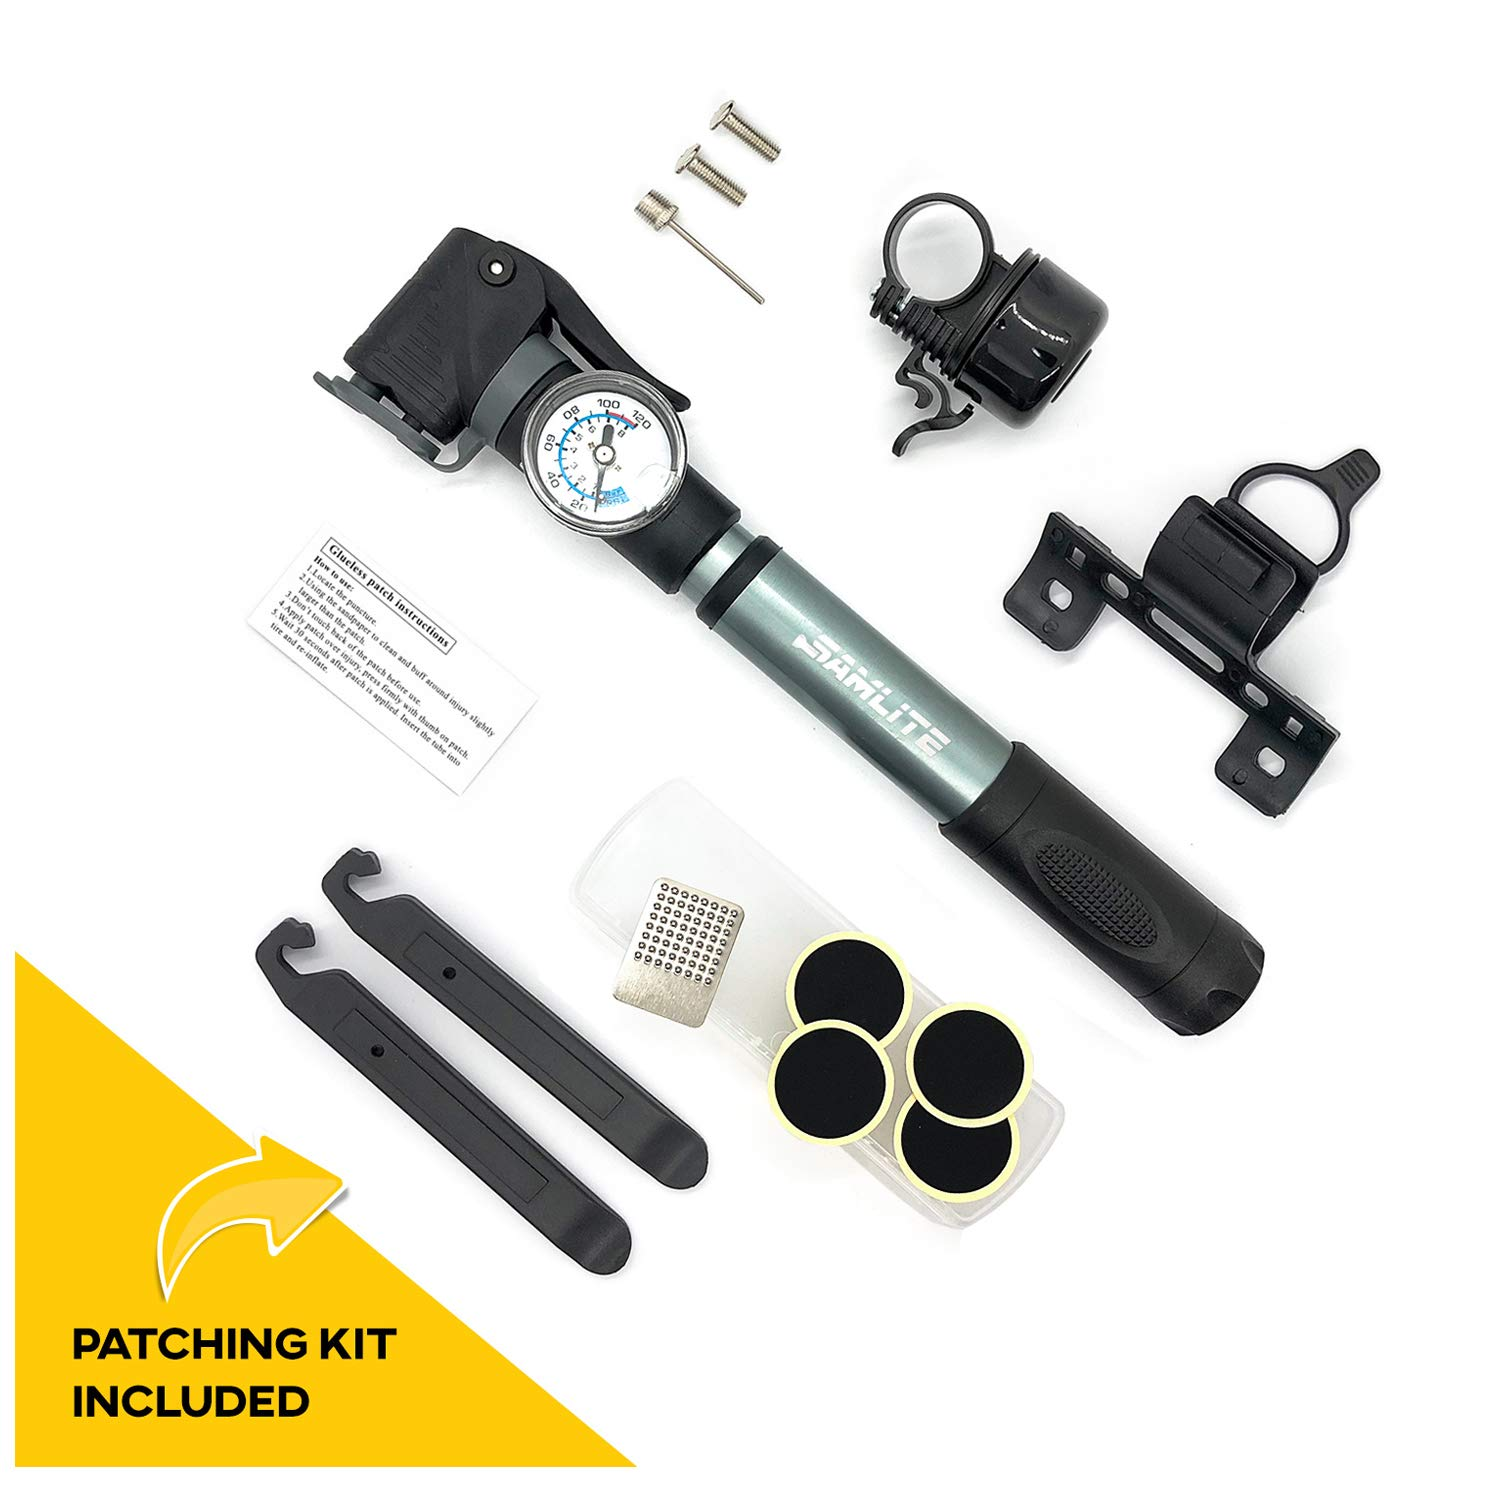 SAMLITE New Mini Bike Pump Portable Bicycle Frame Pump Glue Less Puncture Repair Kit Presta and